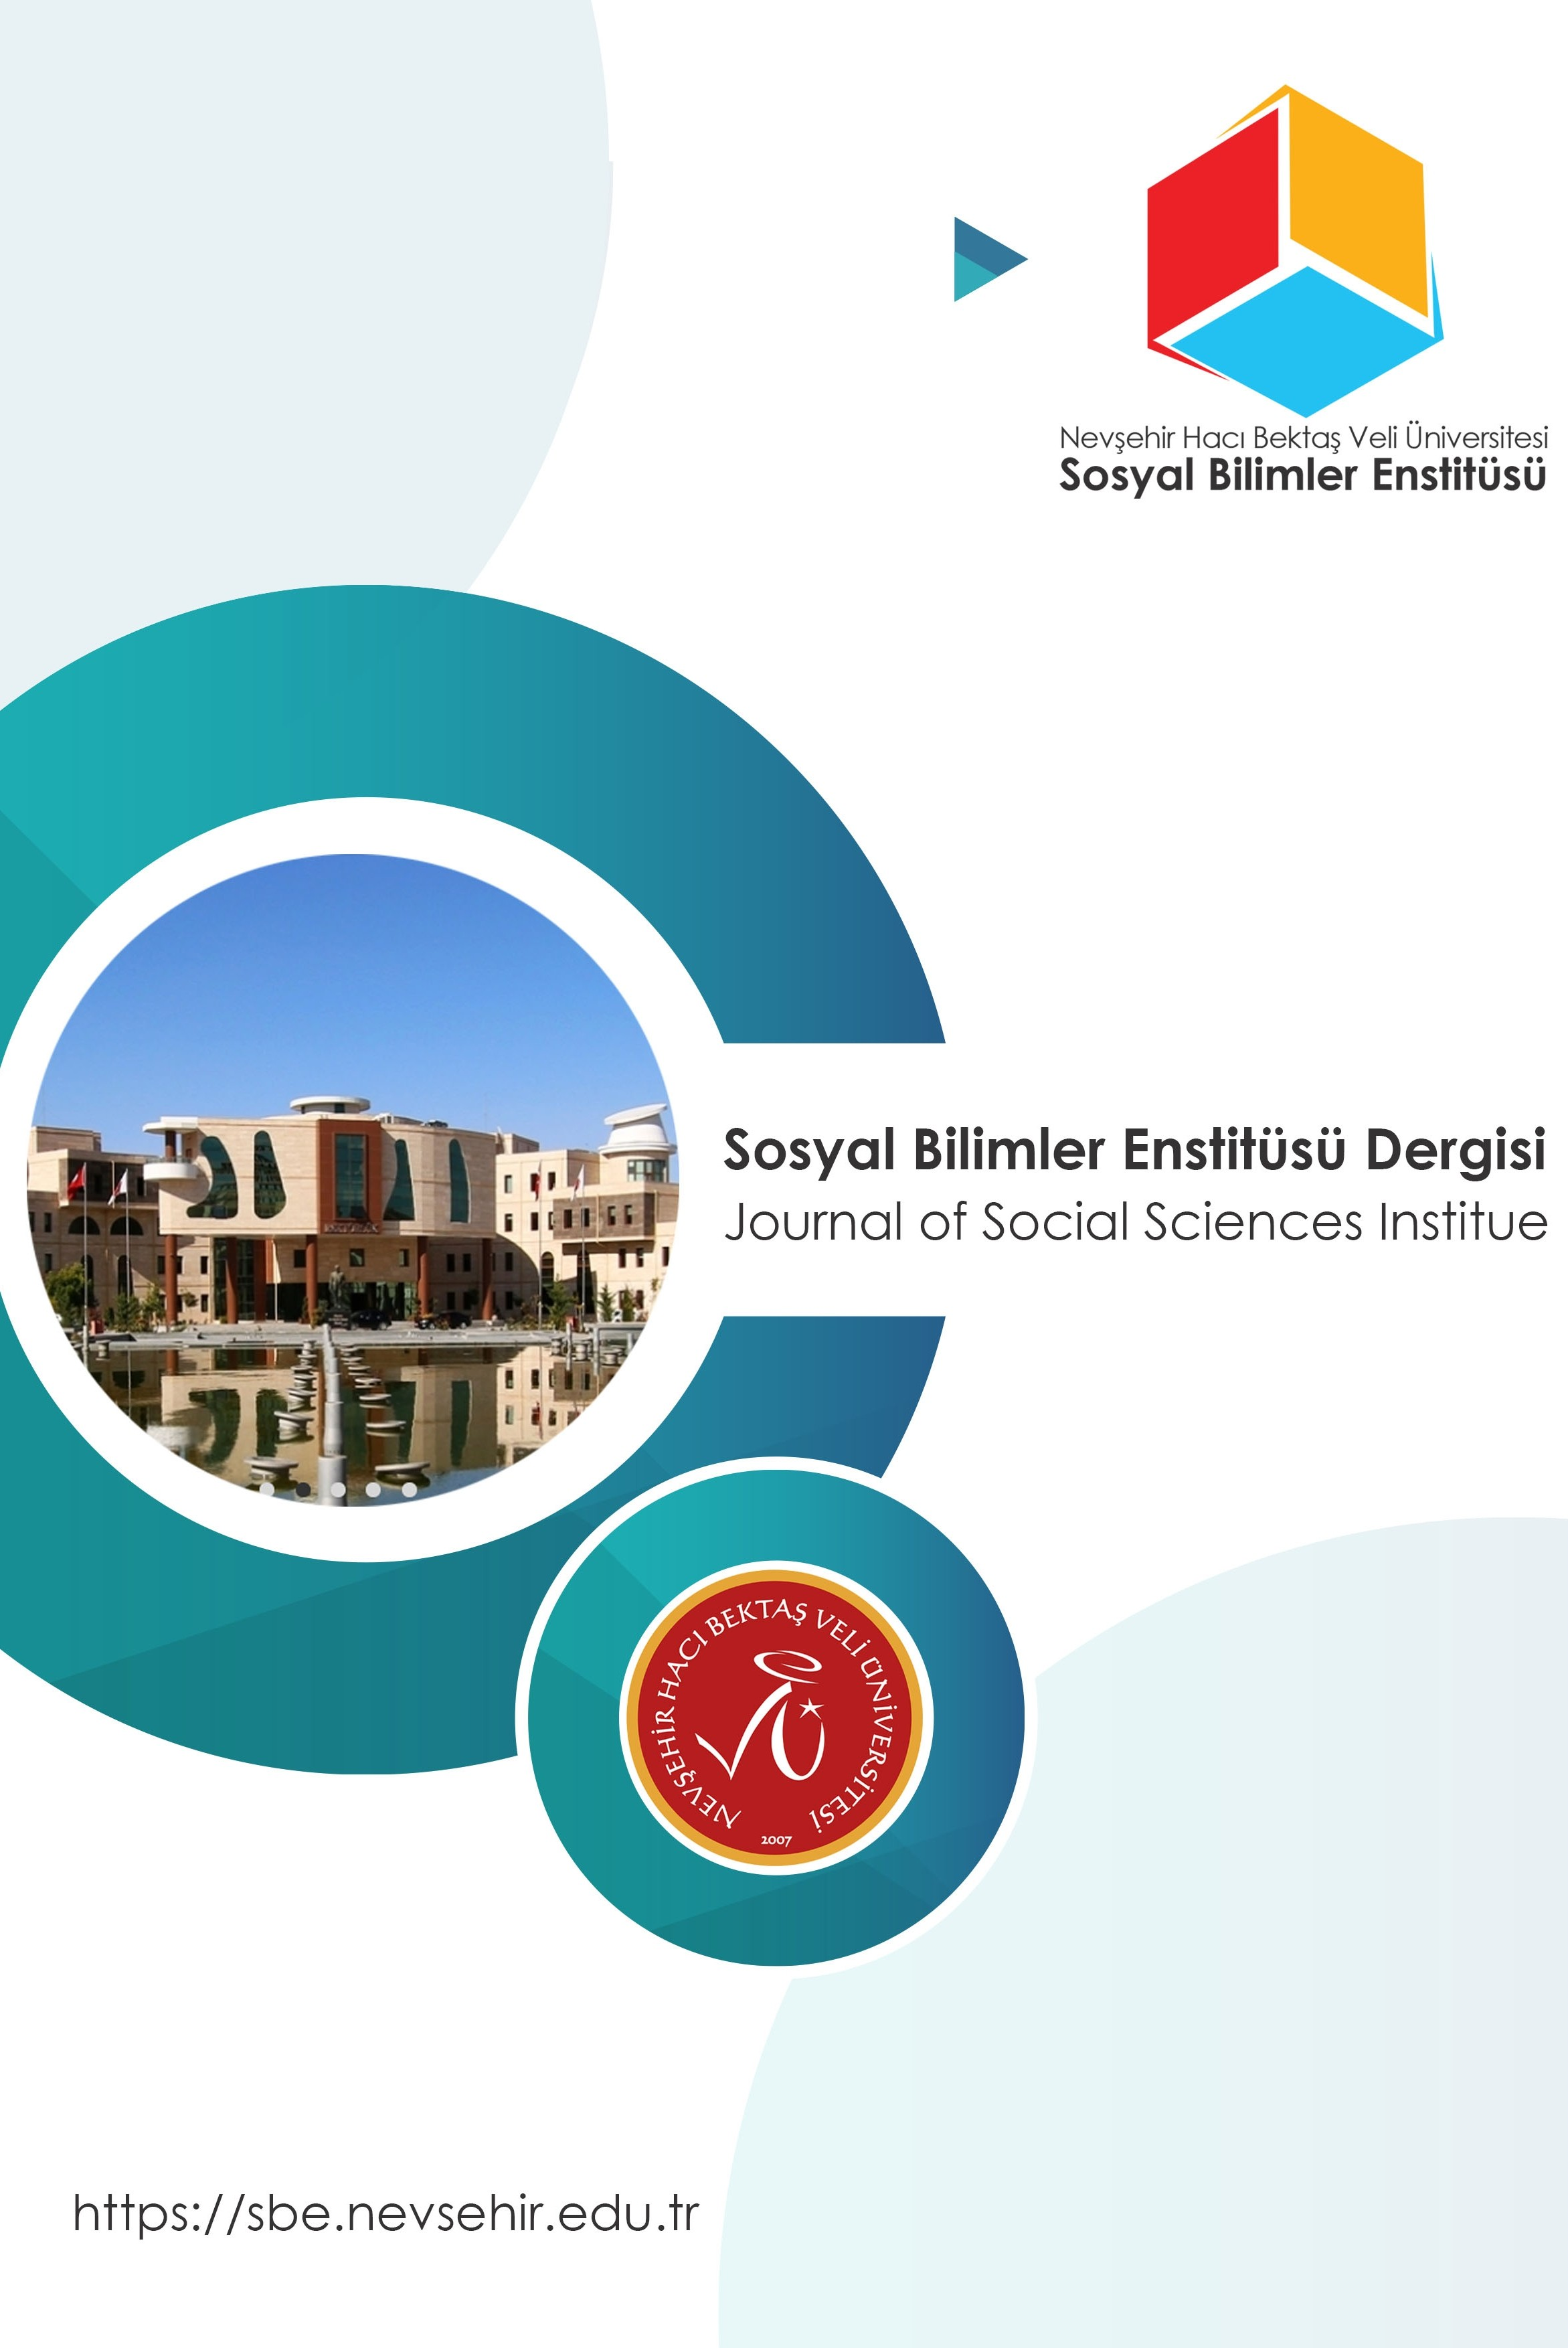 Nevşehir Hacı Bektaş Veli University Journal of ISS